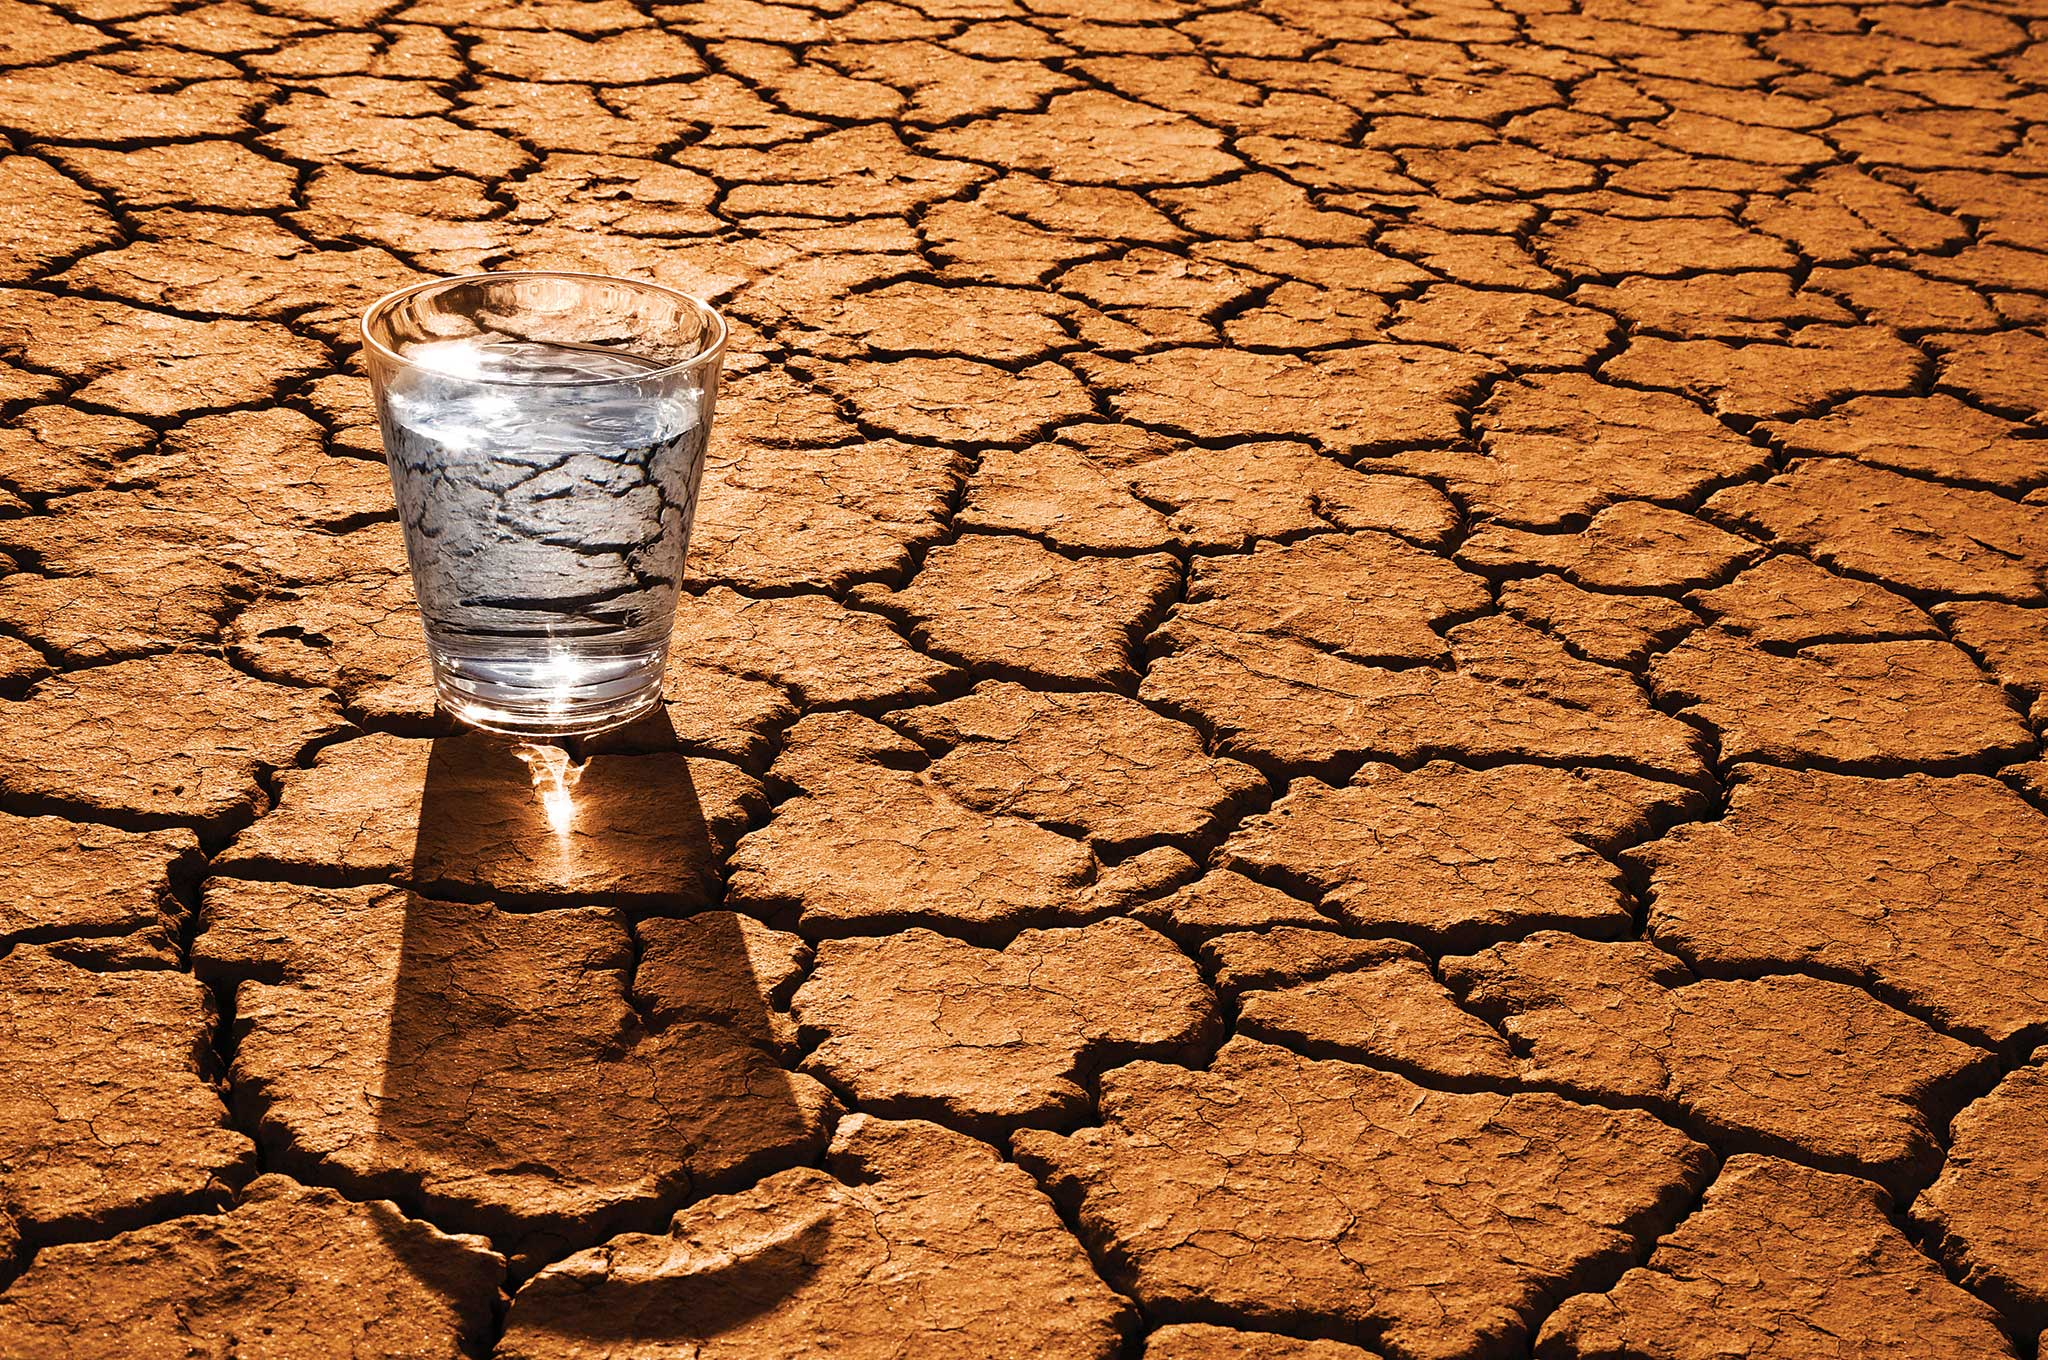 water-rationing-while-stranded-in-the-desert (1).jpg